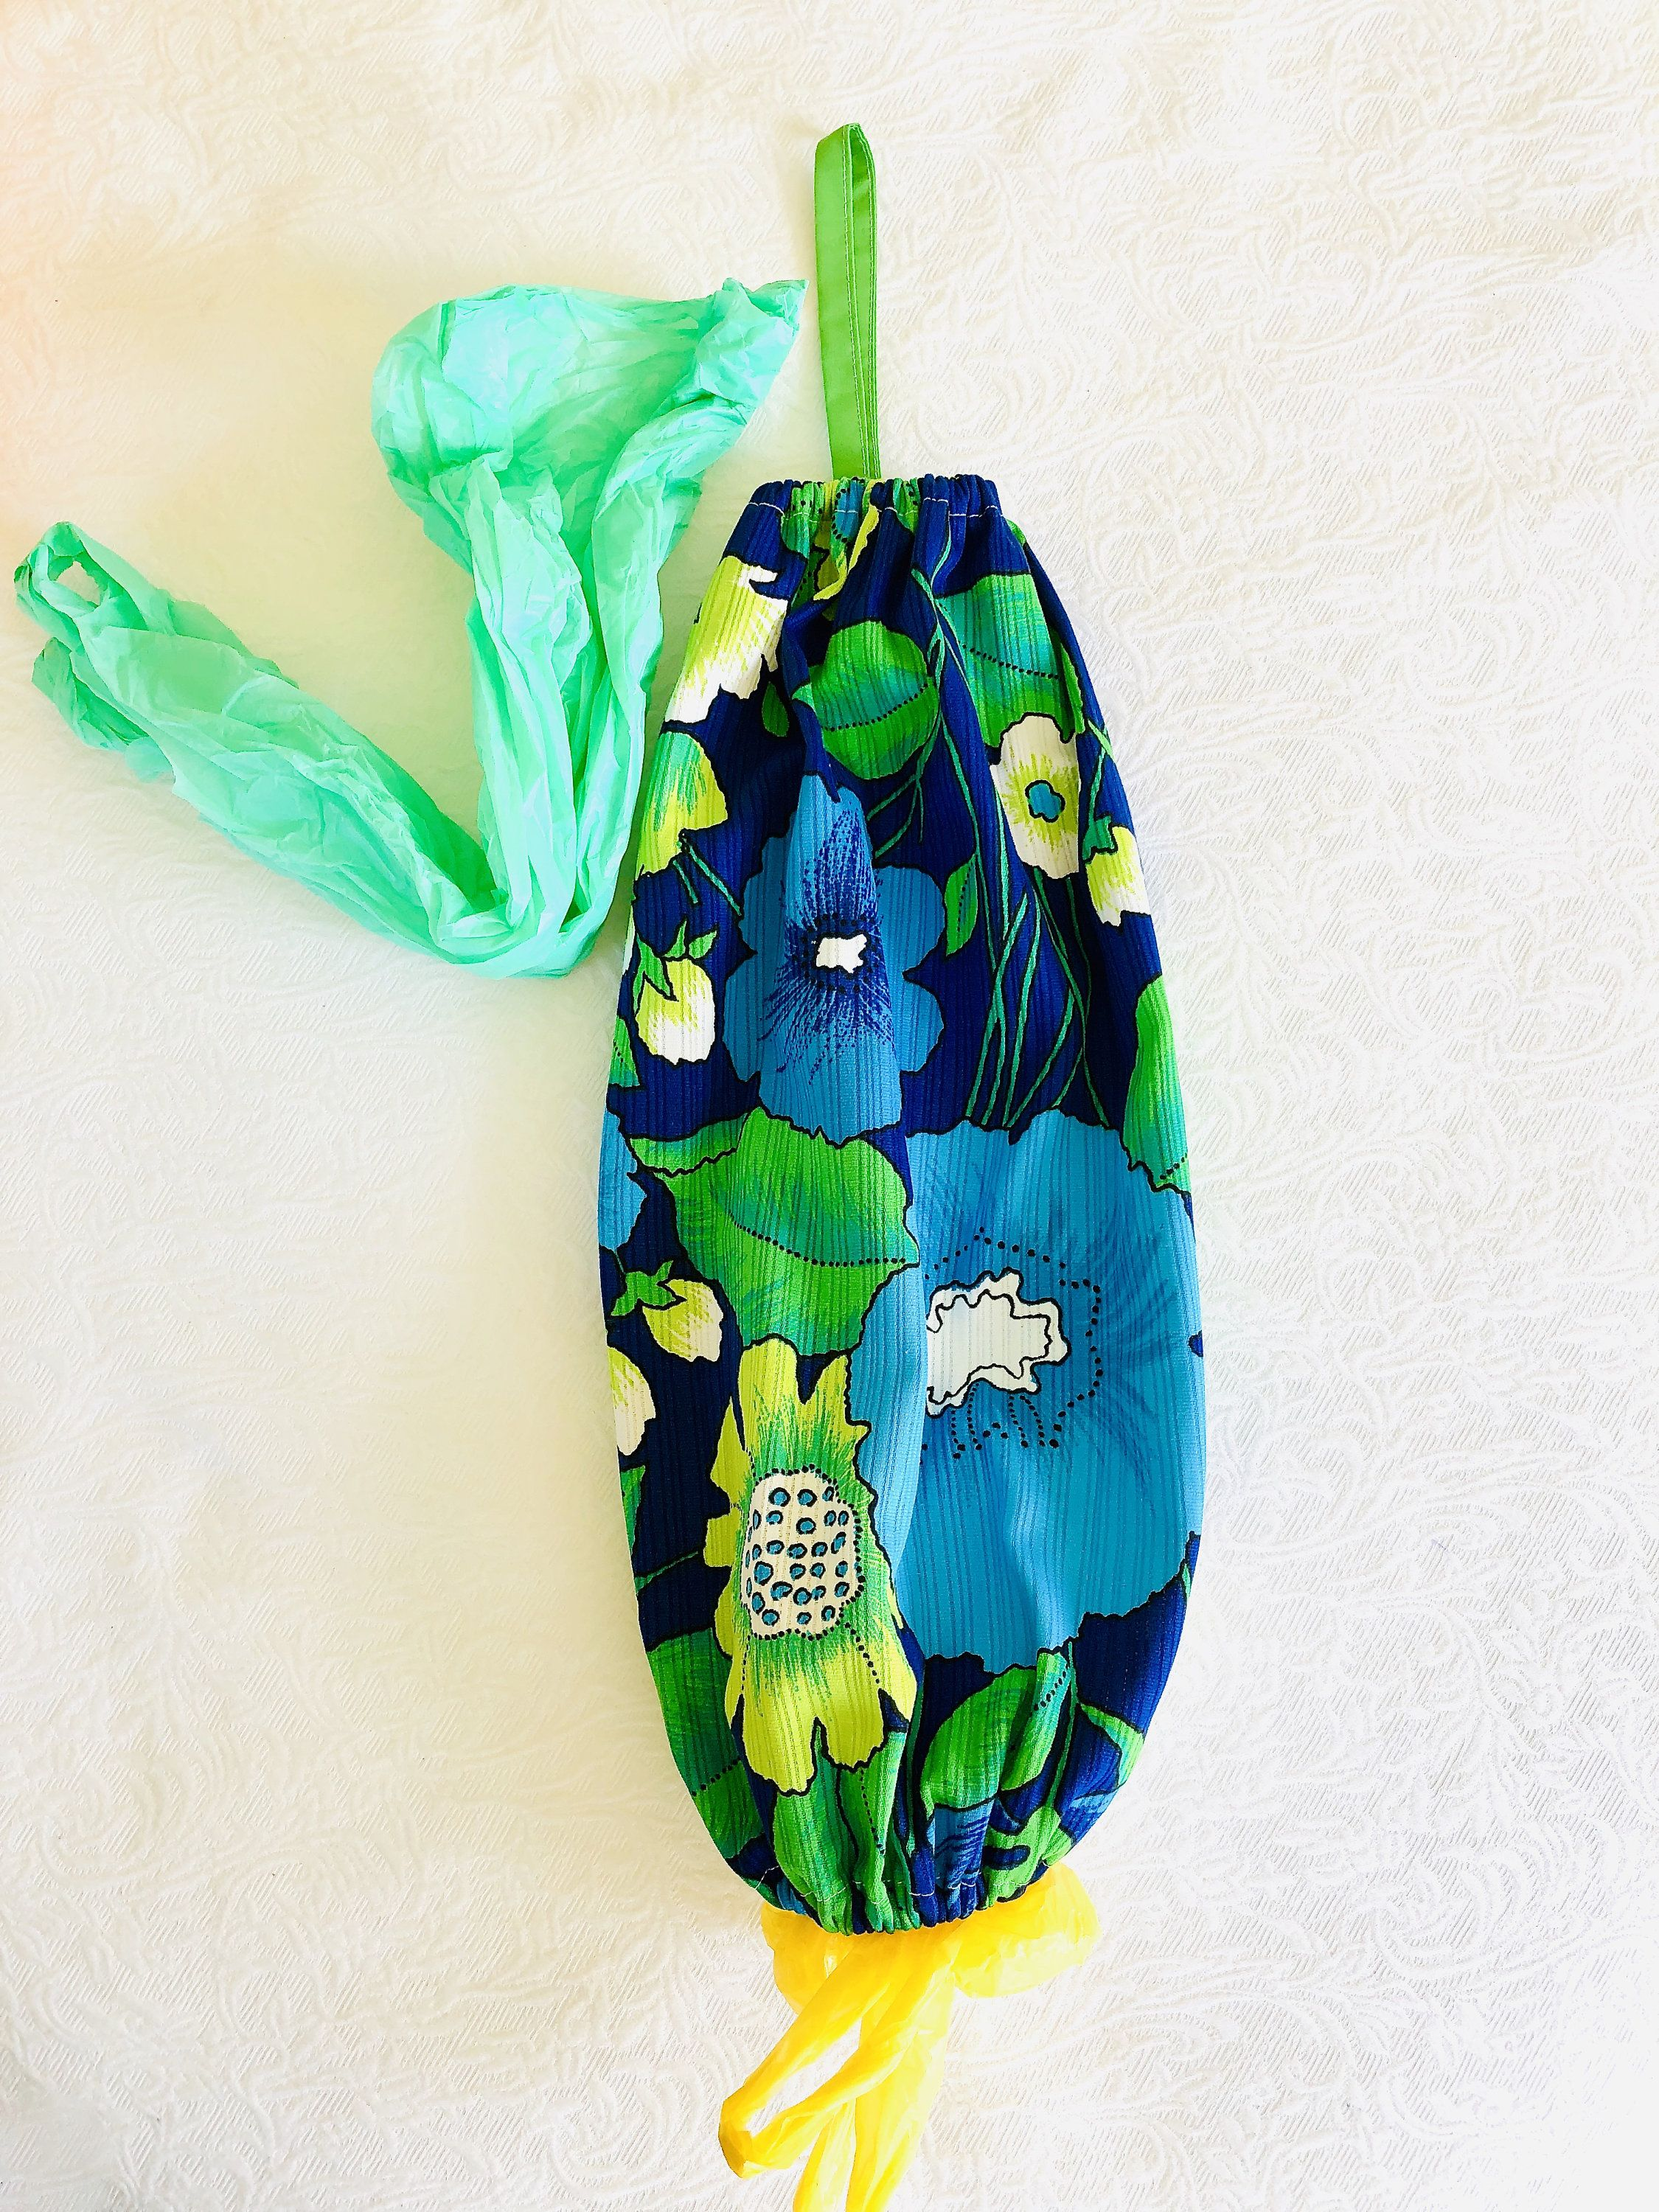 Grocery Bag Holder Plastic Bag Storage Vintage Fabric Blue White Green Floral Decluttering Kitchen Storage Housewarming Recycling Gift Grocery Bag Holder Fabric Gifts Bag Holder